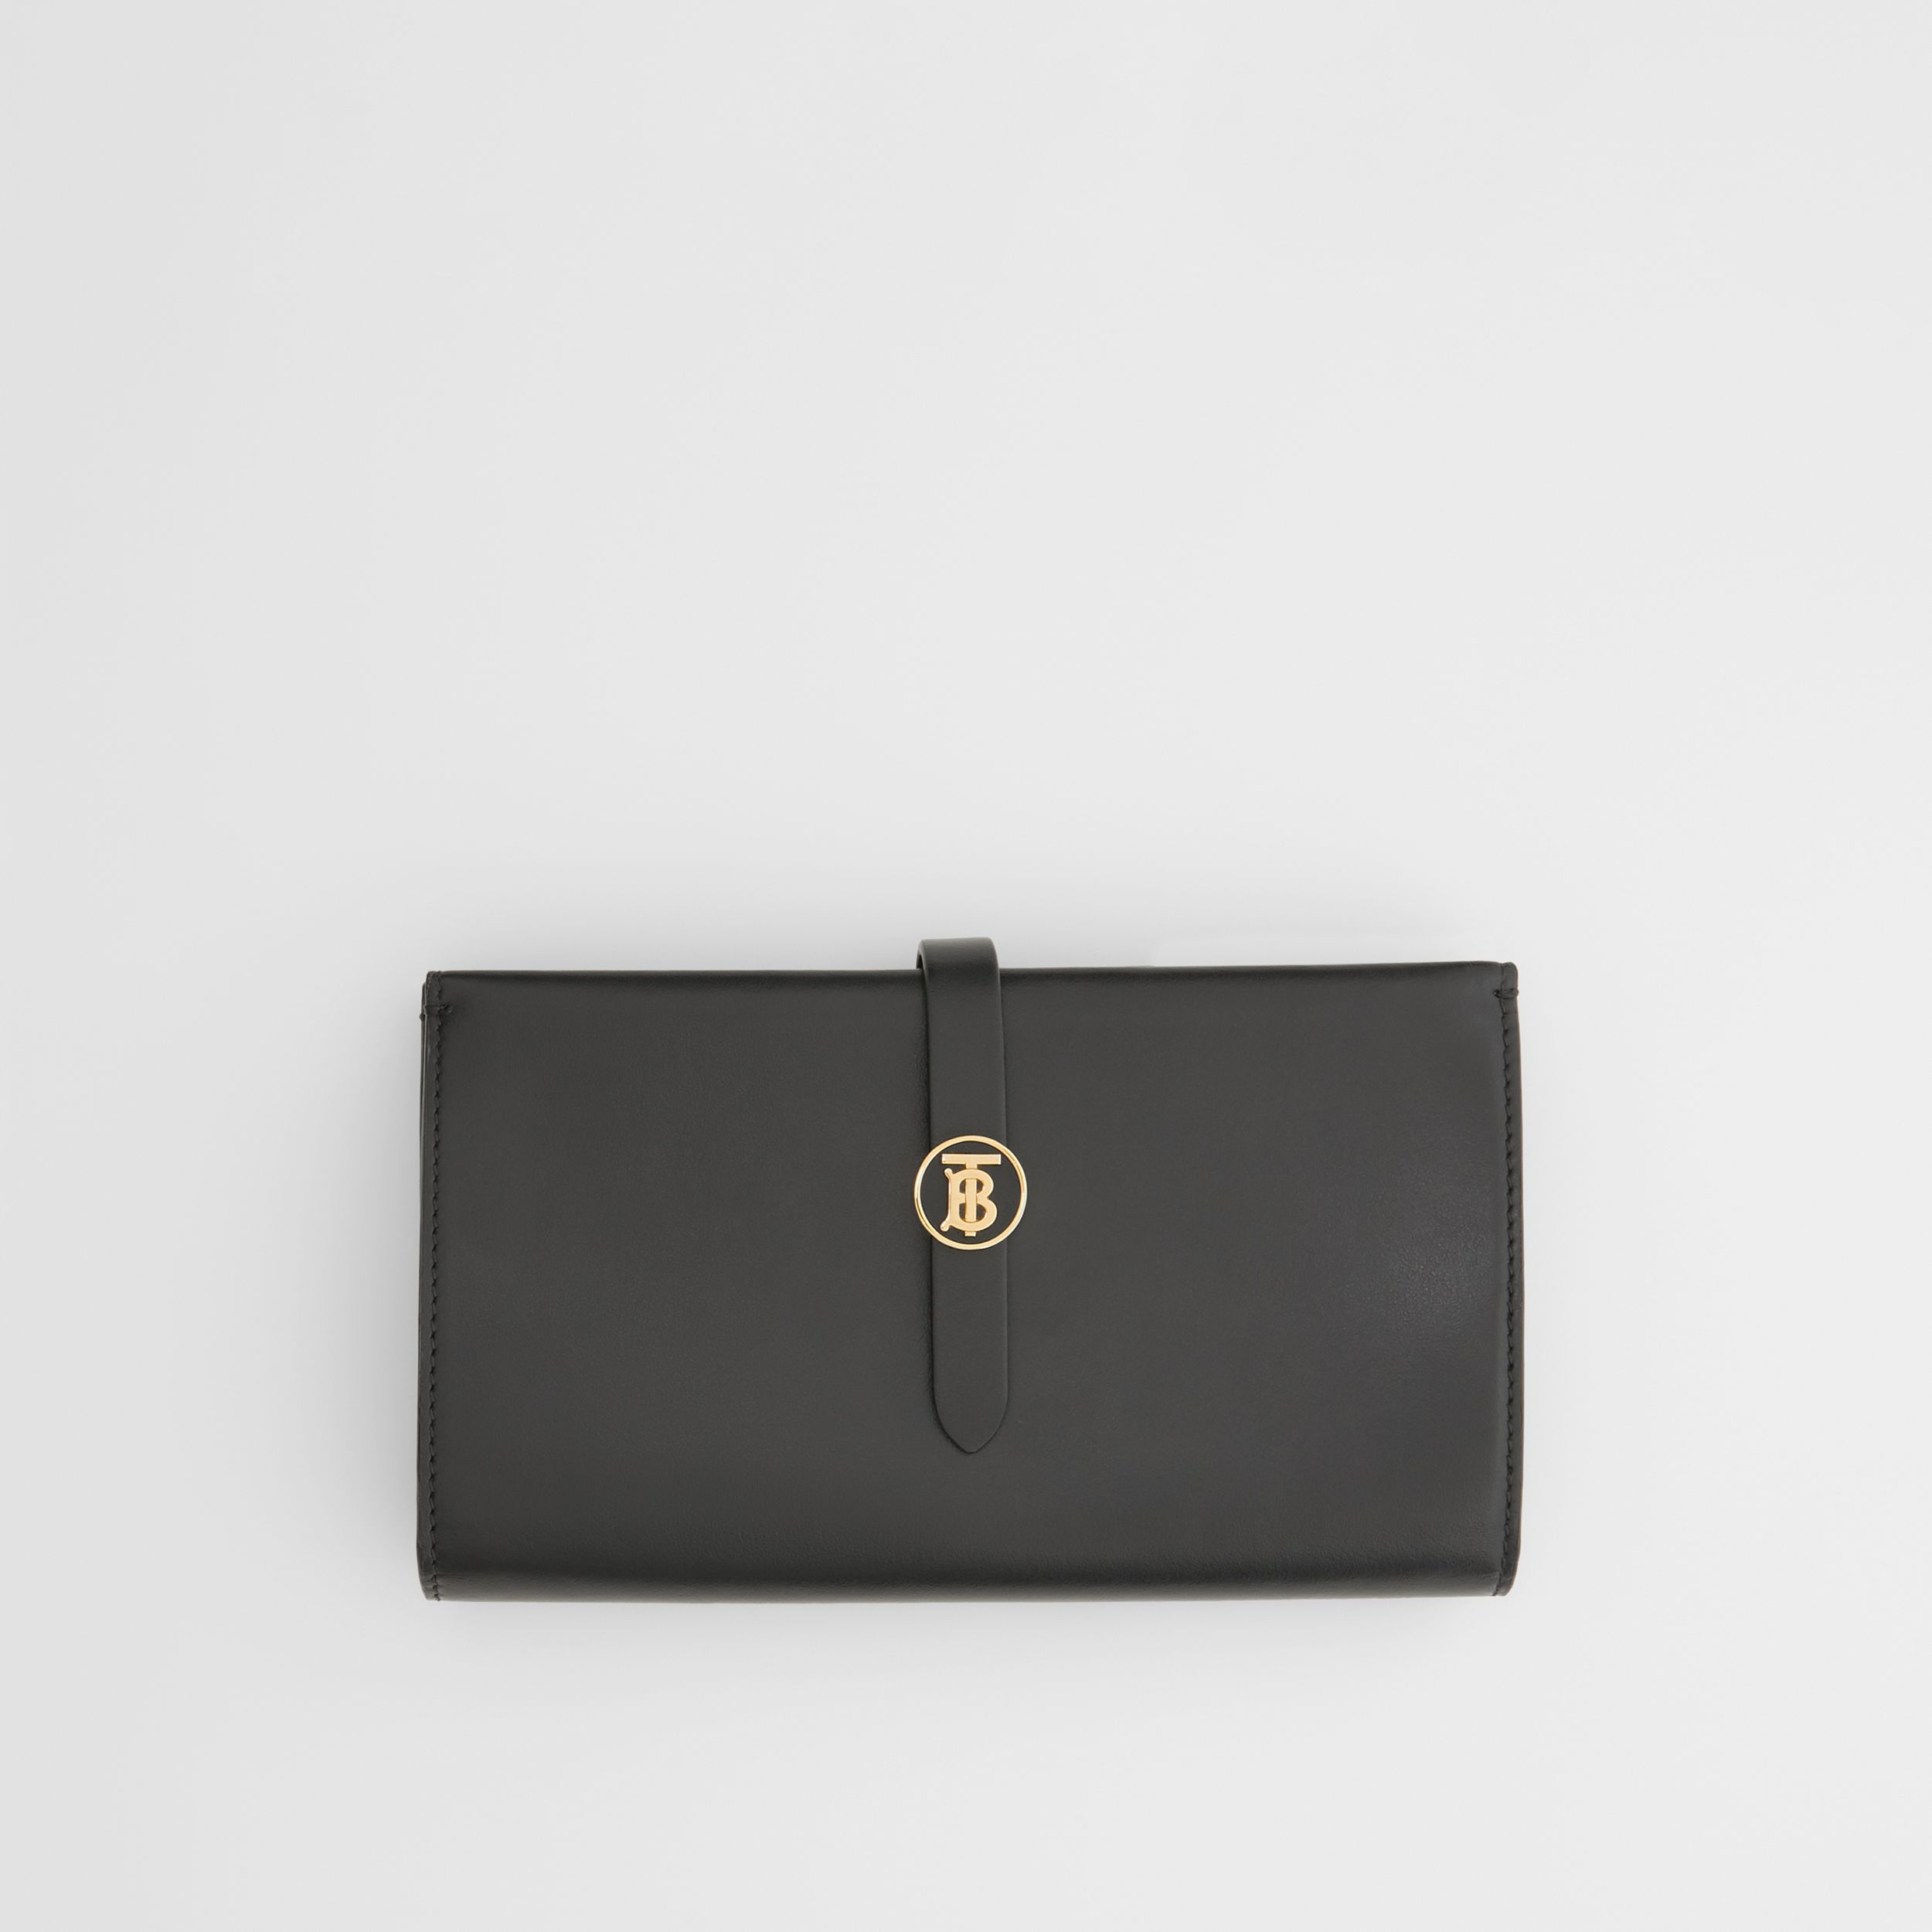 Monogram Motif Leather Folding Wallet in Black - Women | Burberry - 1